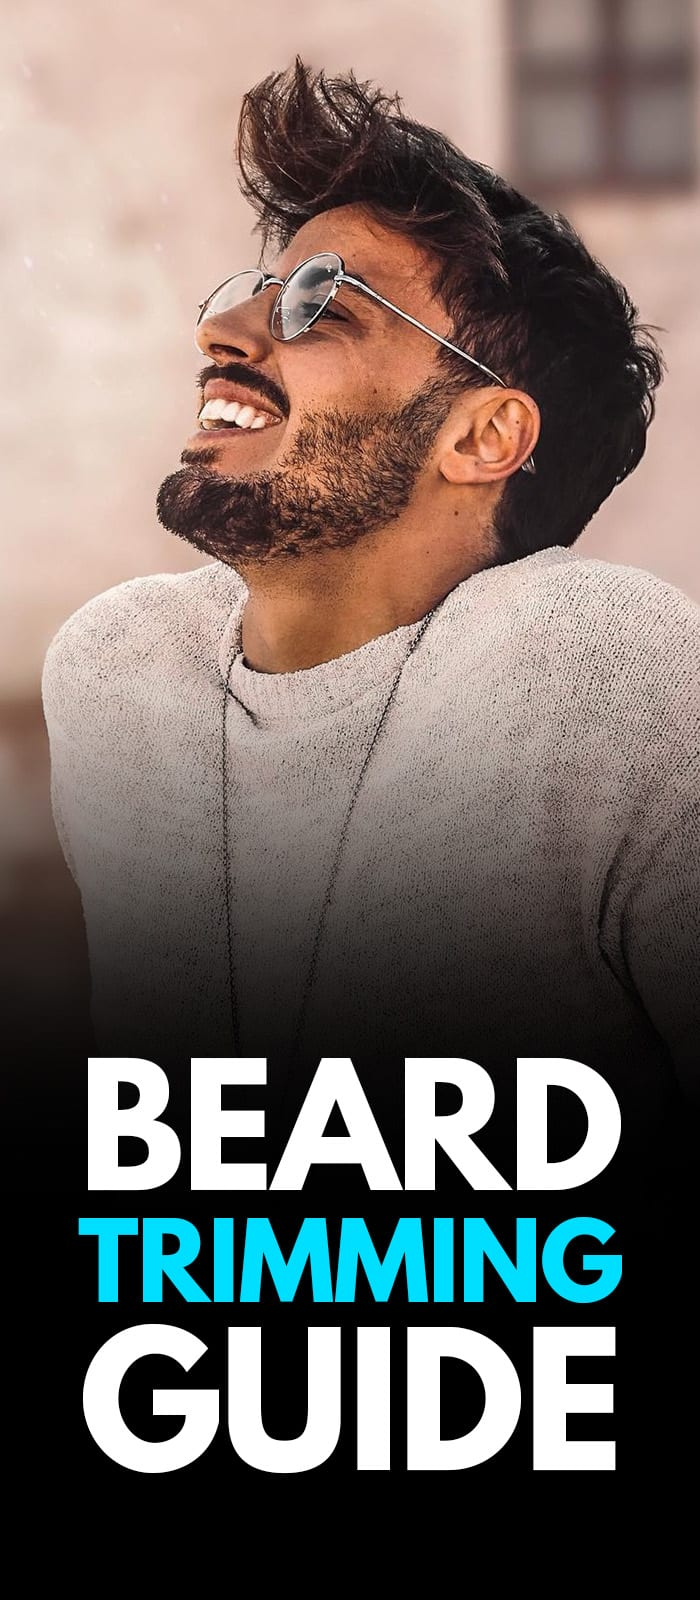 Beard Trimming Guide!